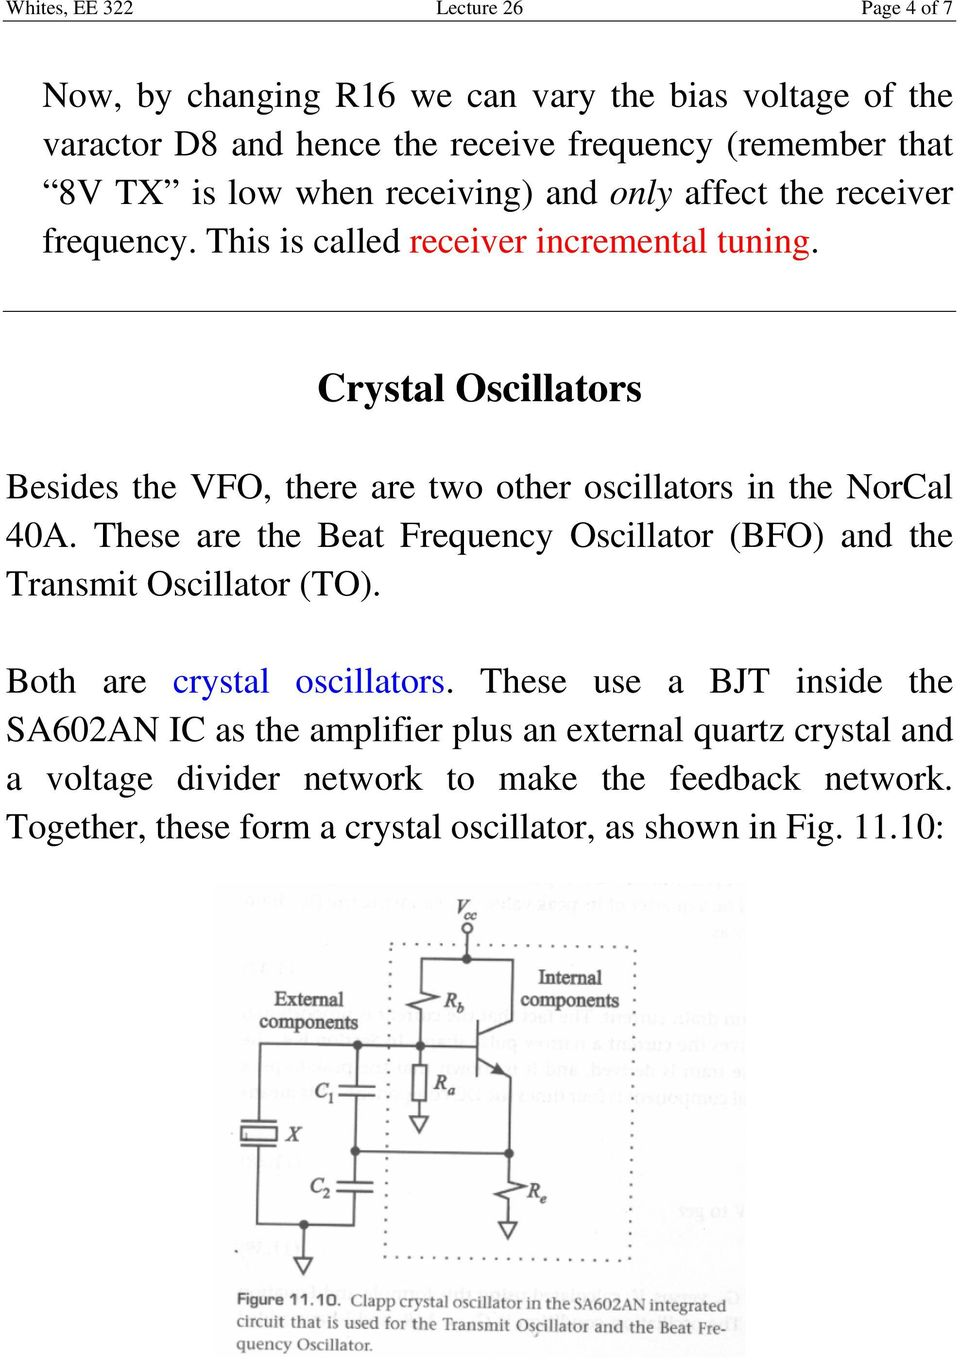 Crystal Oscillators Besides the VFO, there are two other oscillators in the NorCal 40A. These are the Beat Frequency Oscillator (BFO) and the Transmit Oscillator (TO).